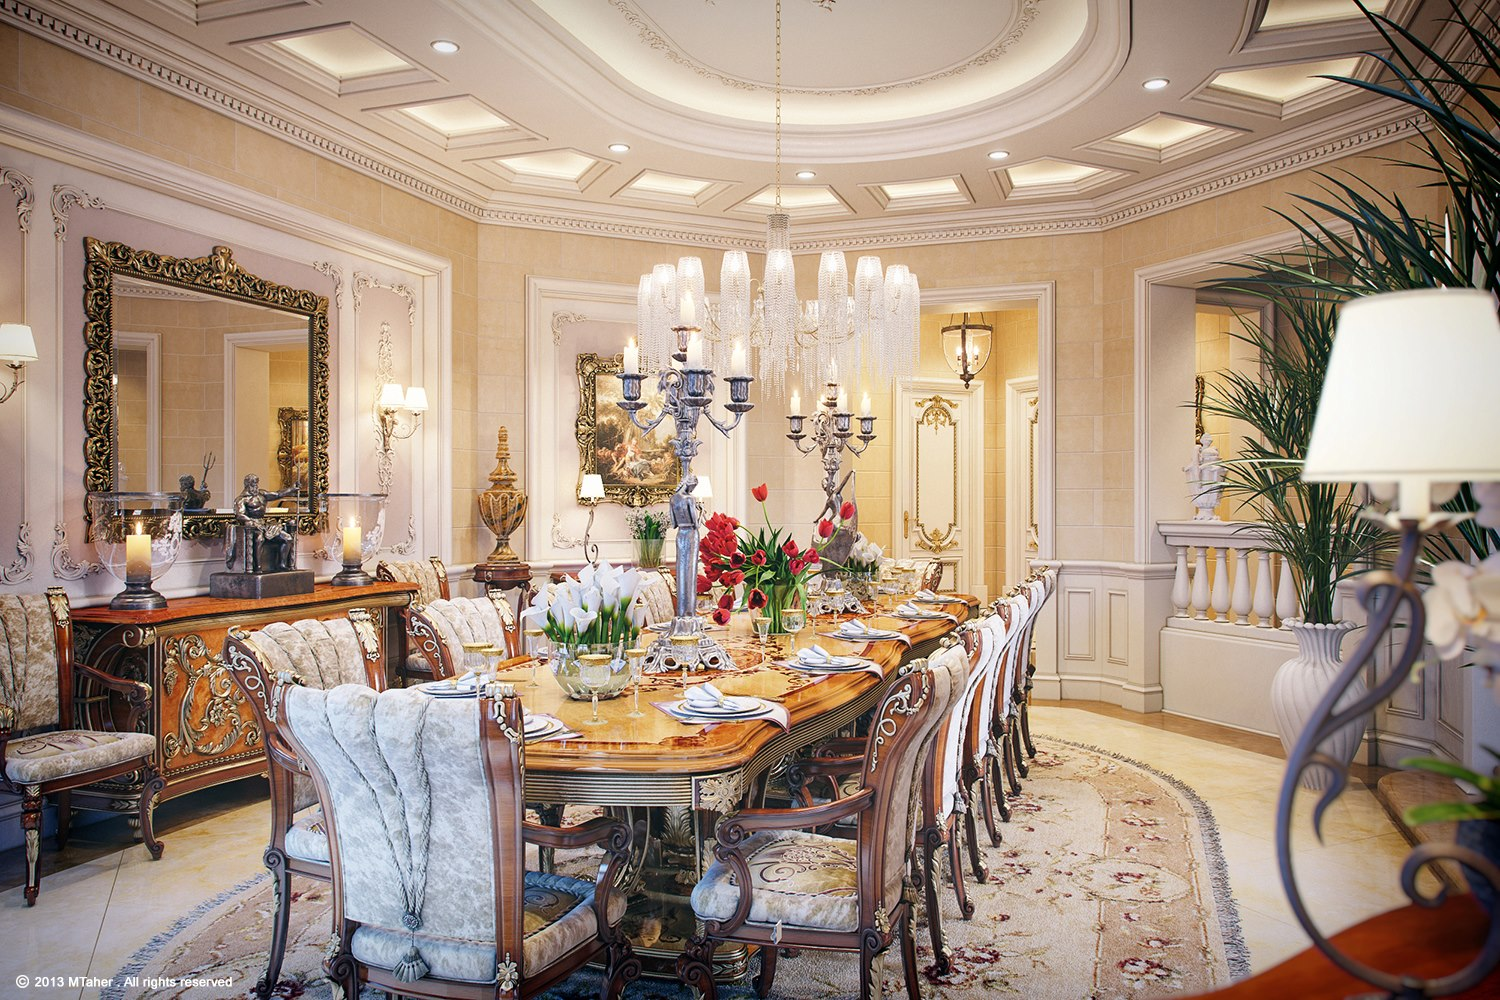 Luxury villa dining room 3 interior design ideas for House beautiful dining room ideas